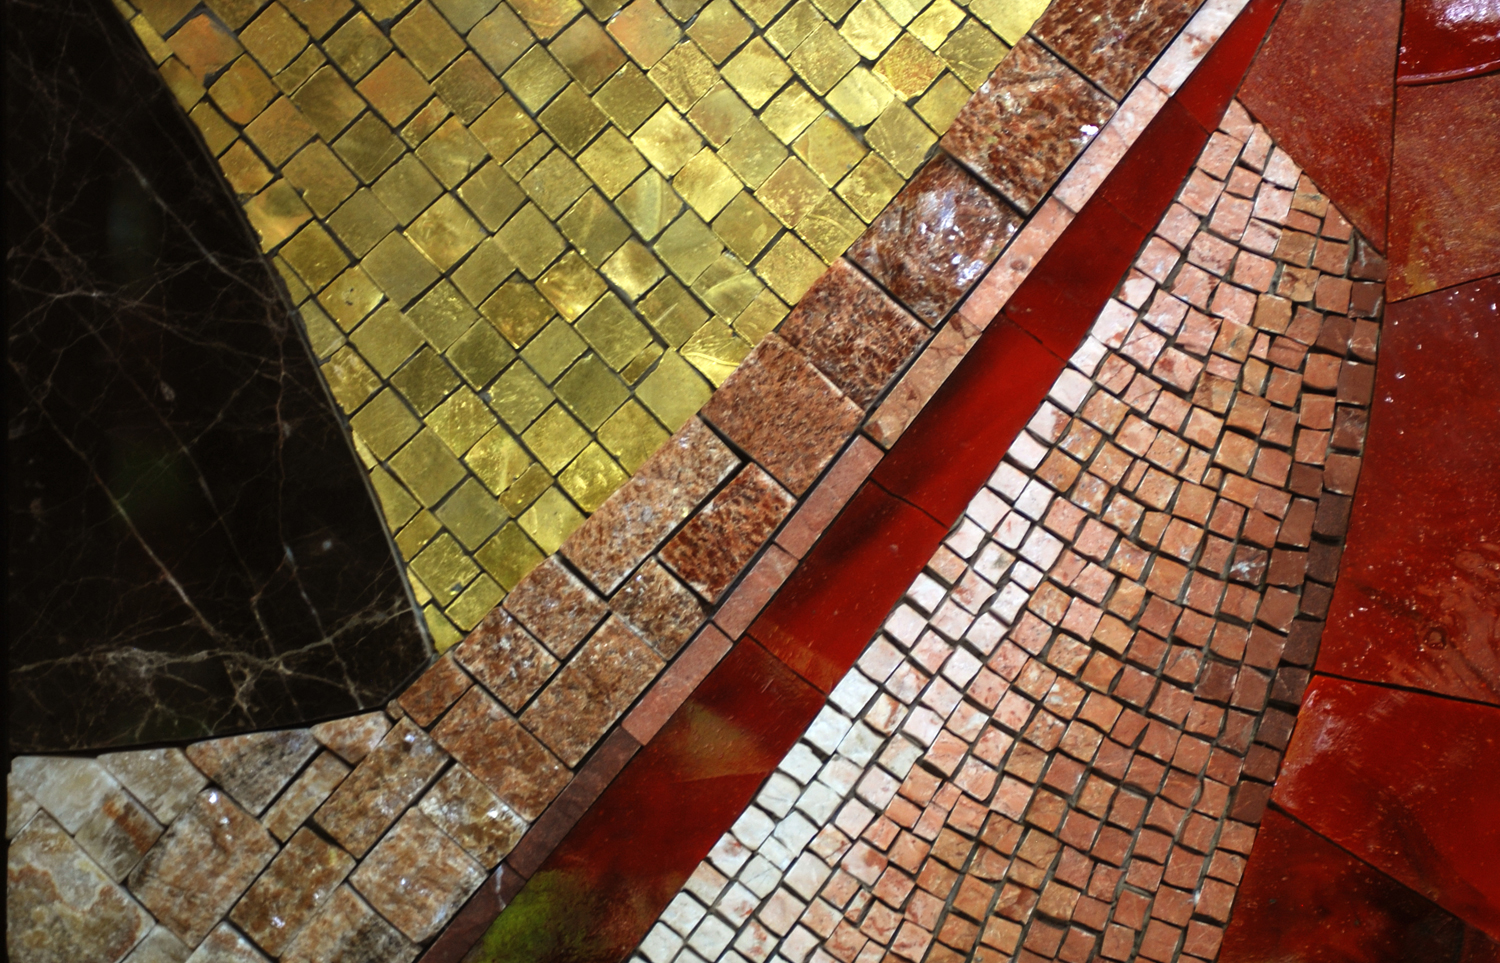 Mosaic Sample Board, showing marble slabs, cut marble, glass cakes, and gold-leaf glass smalti.